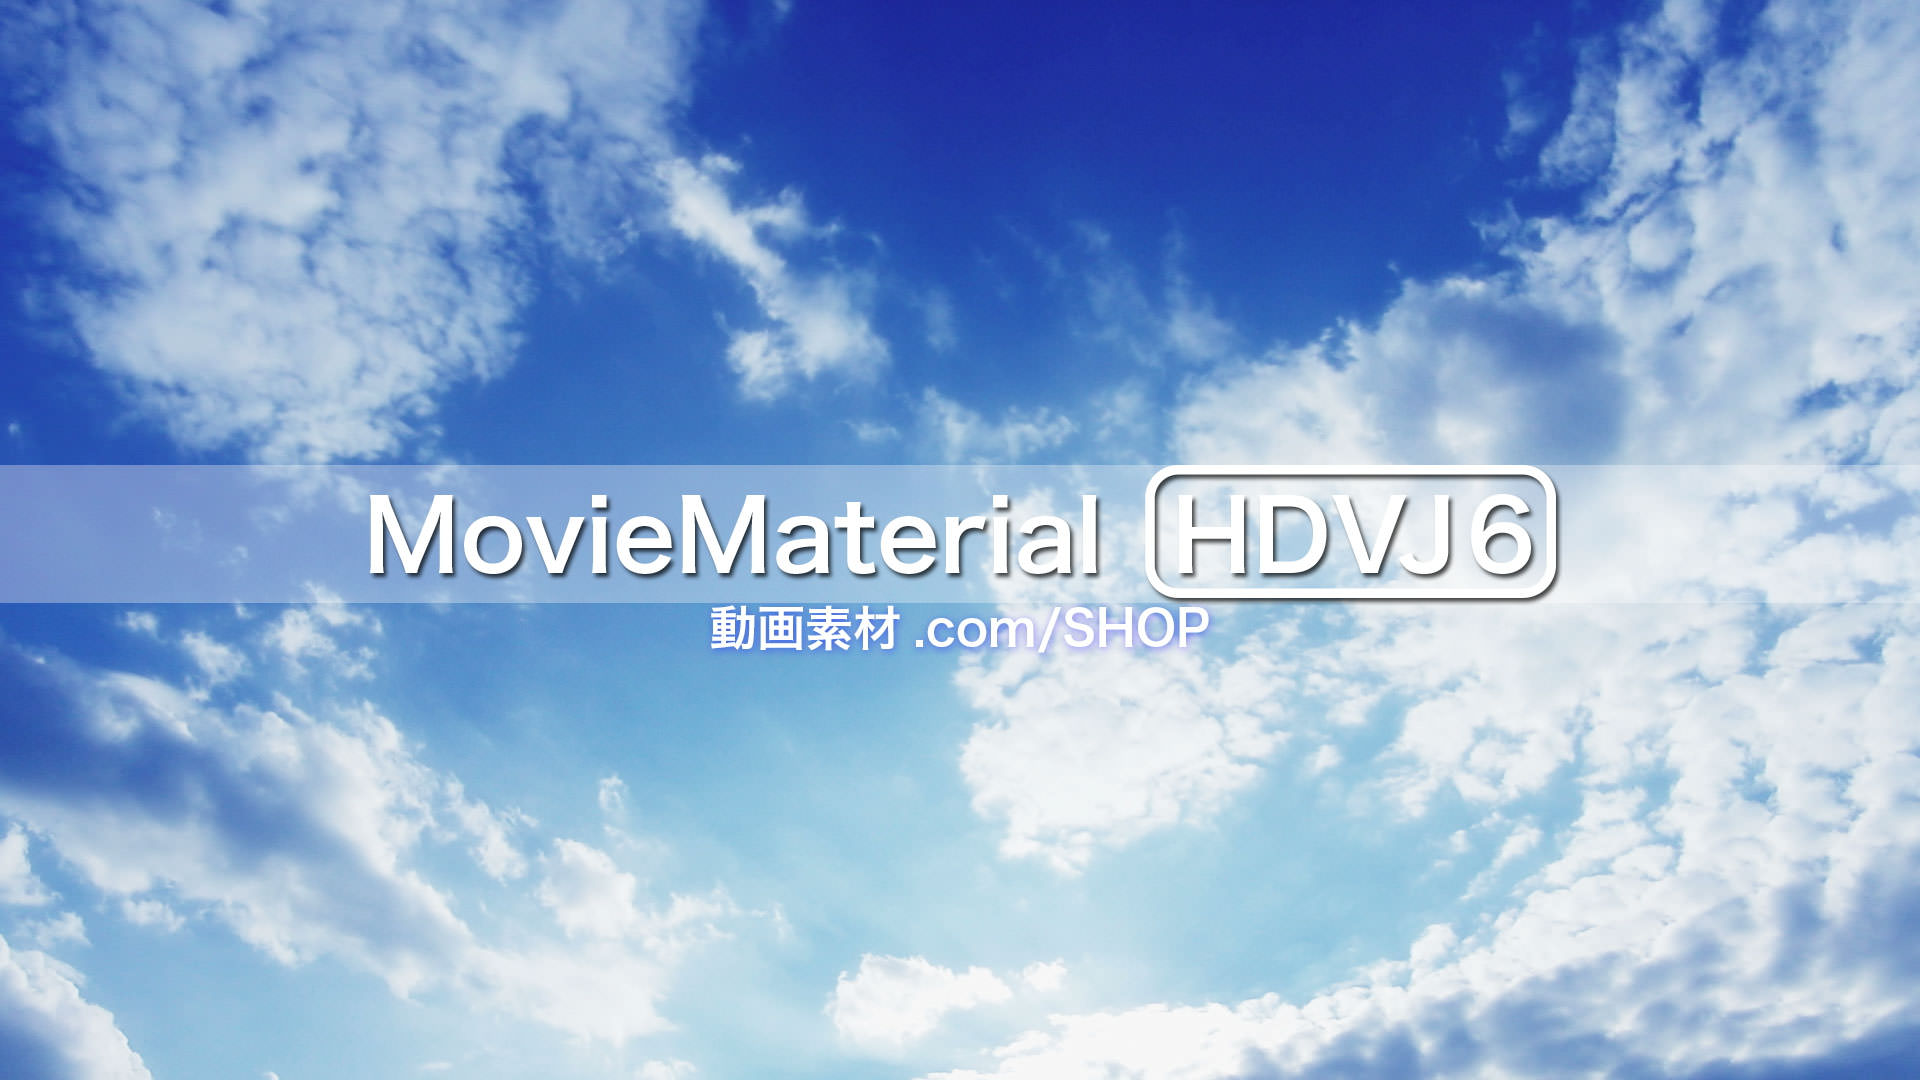 【MovieMaterial HDVJ6】フルハイビジョン動画素材集20